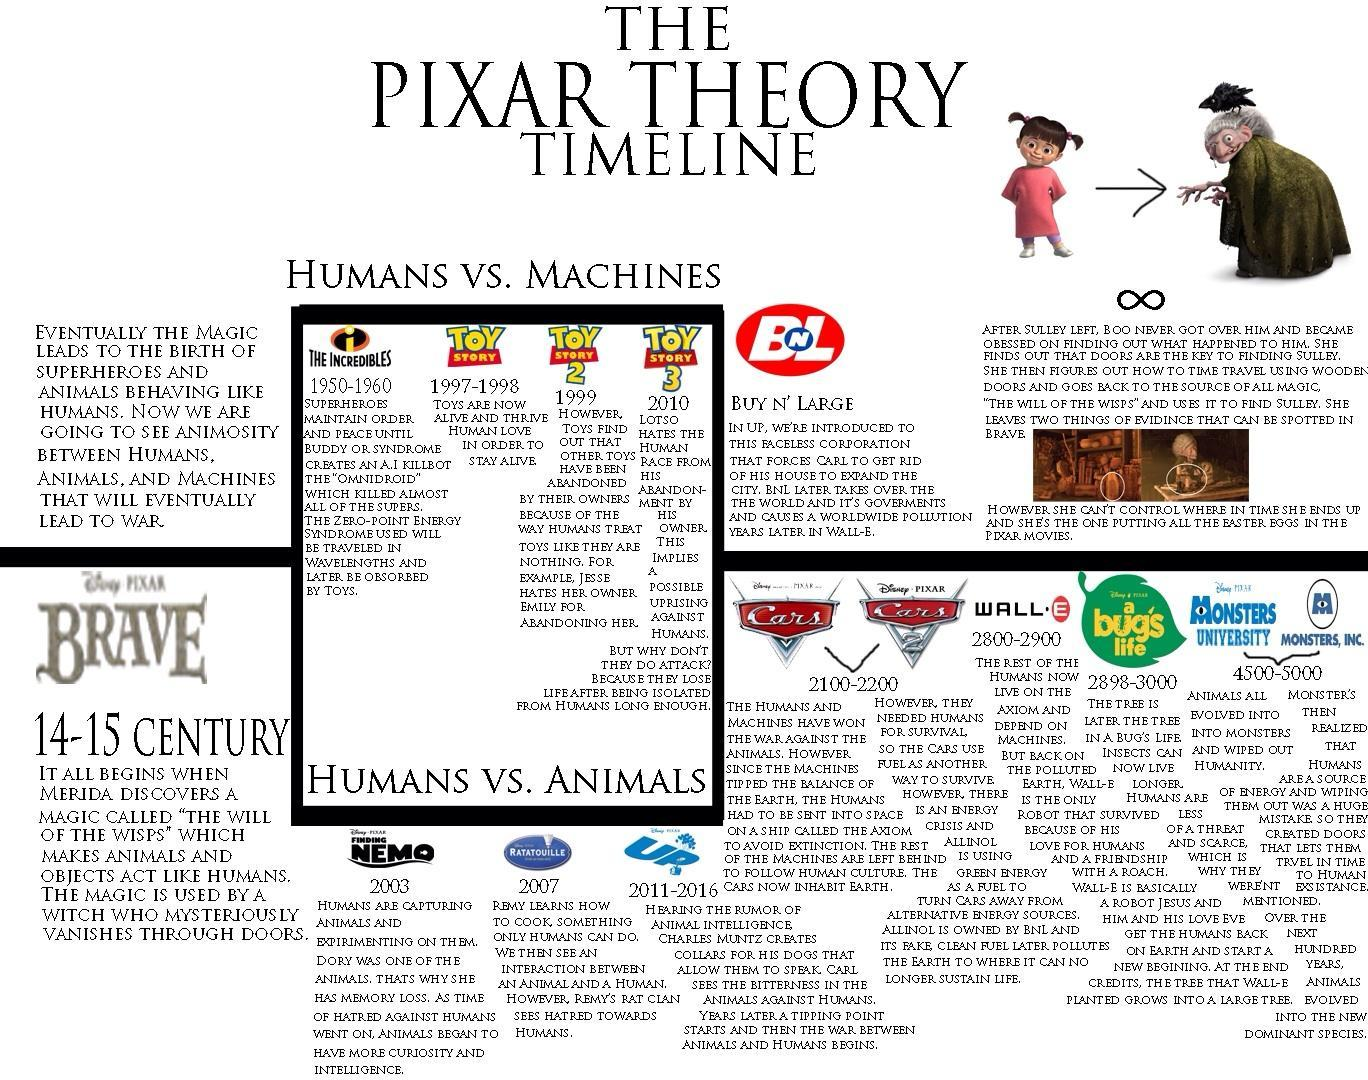 What do you think of The Pixar Theory?